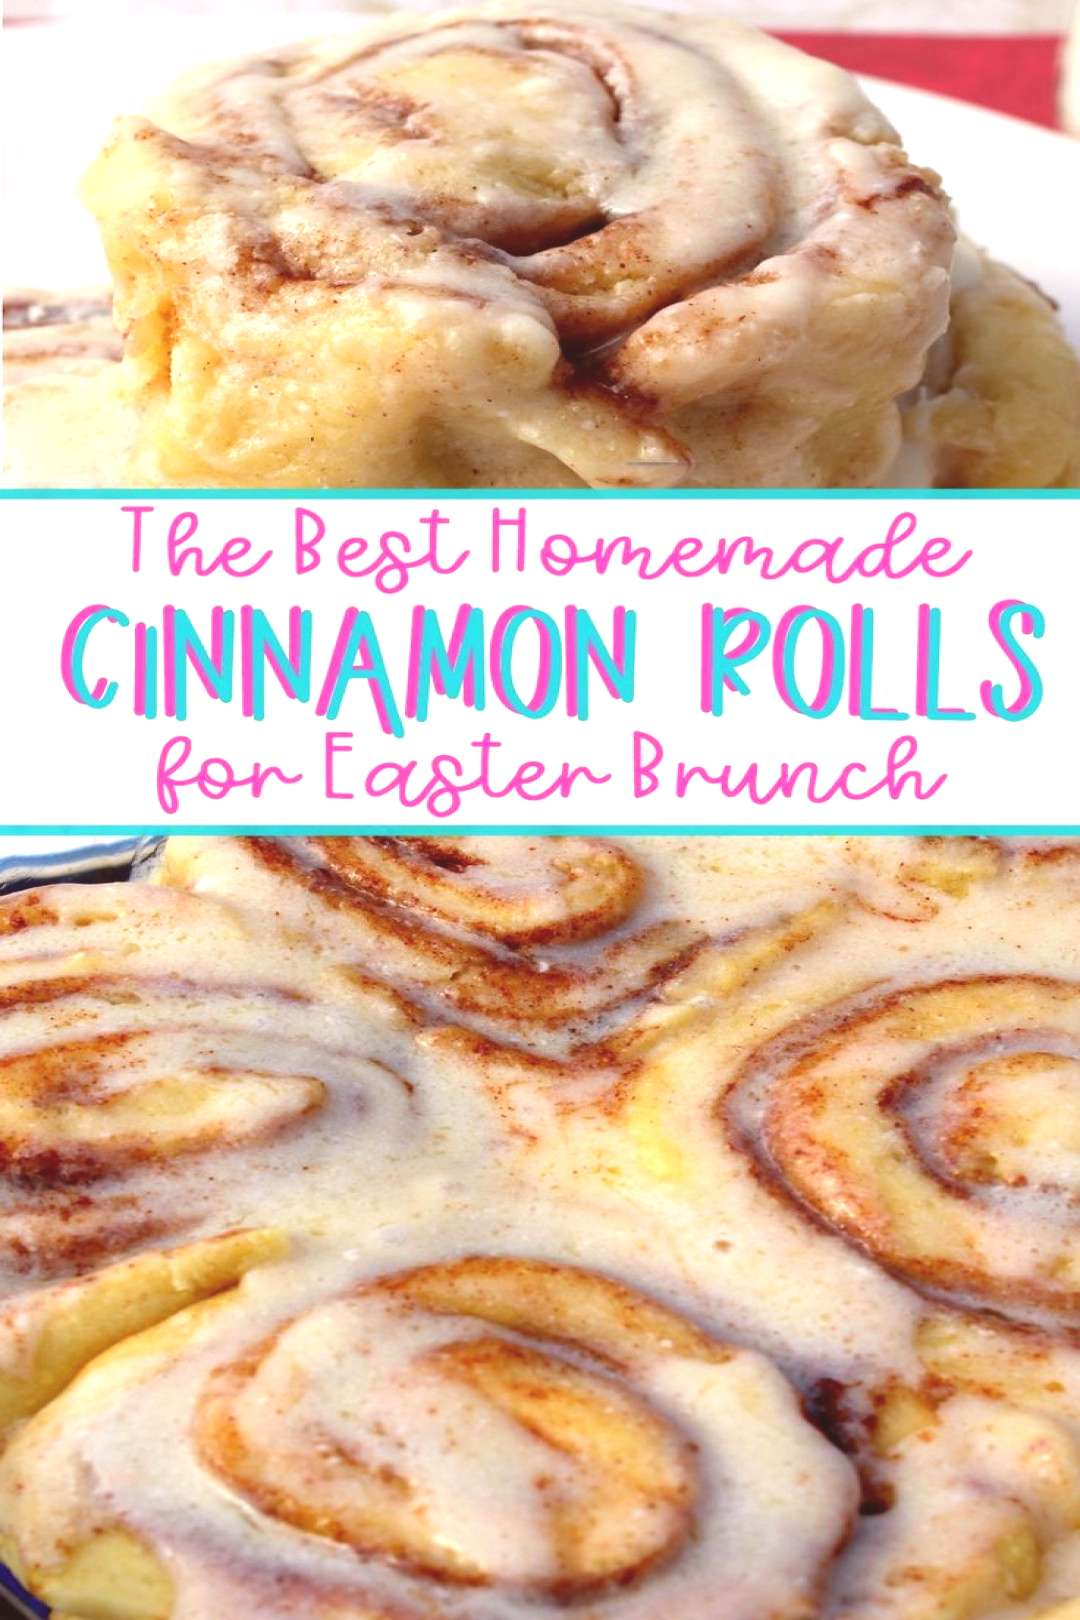 Easter Morning Cinnamon Rolls Treat your family to these delicious homemade Cinnamon Rolls for East